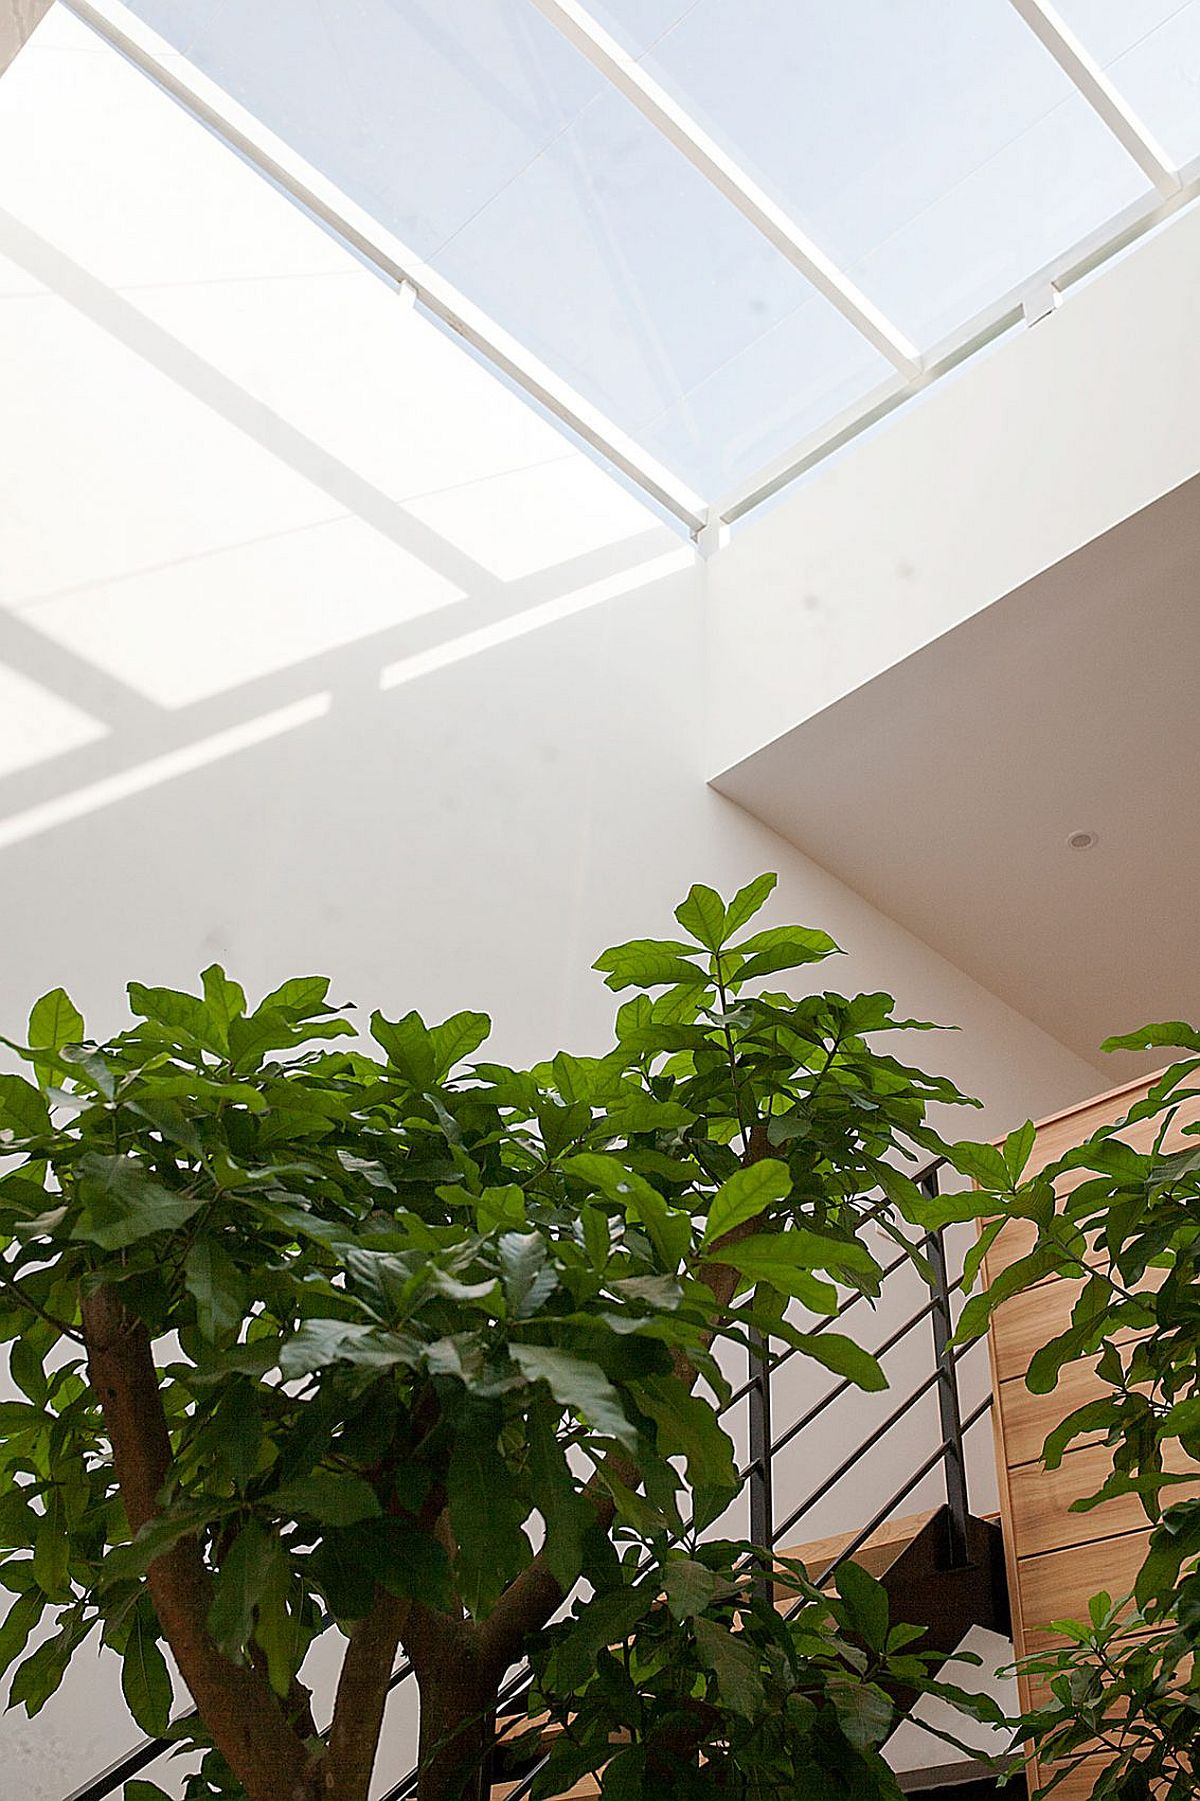 Bringing in natural light allows you to have lovely indoor plants